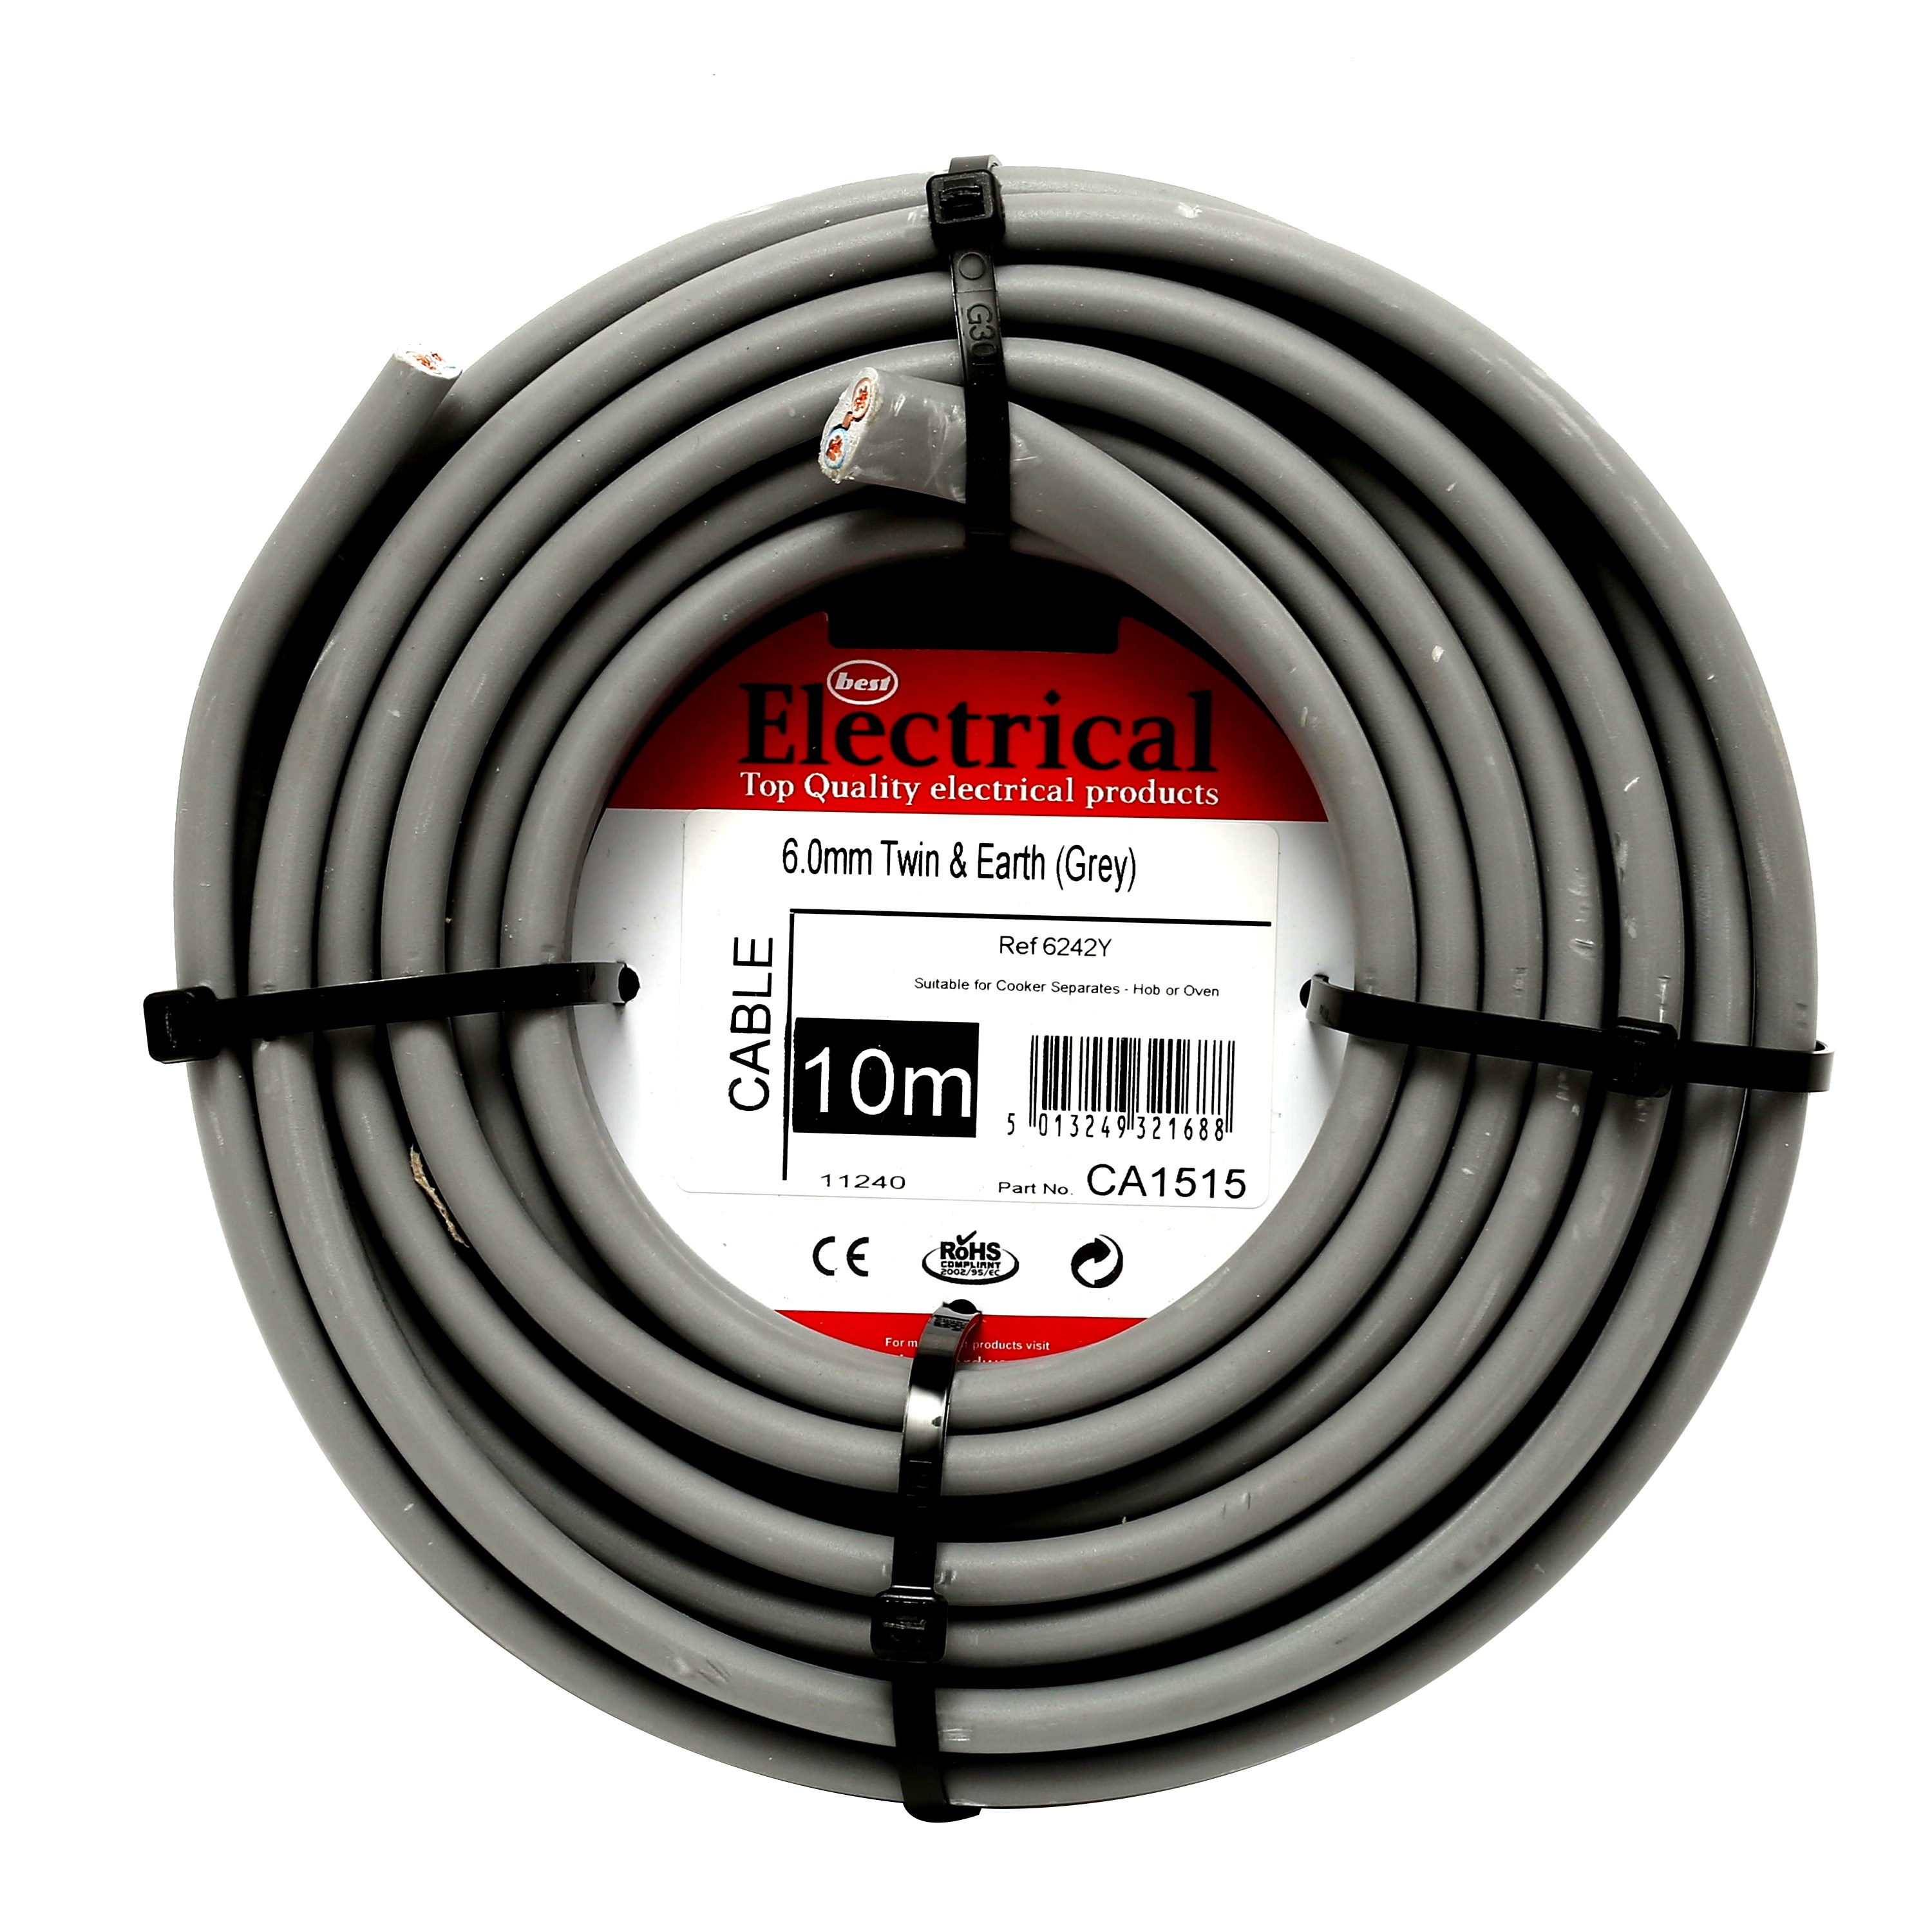 Standard House Wiring Cable Indoor Outdoor Design Household Size Best Electrical Twin Earth Grey 6mm Housing Home Run